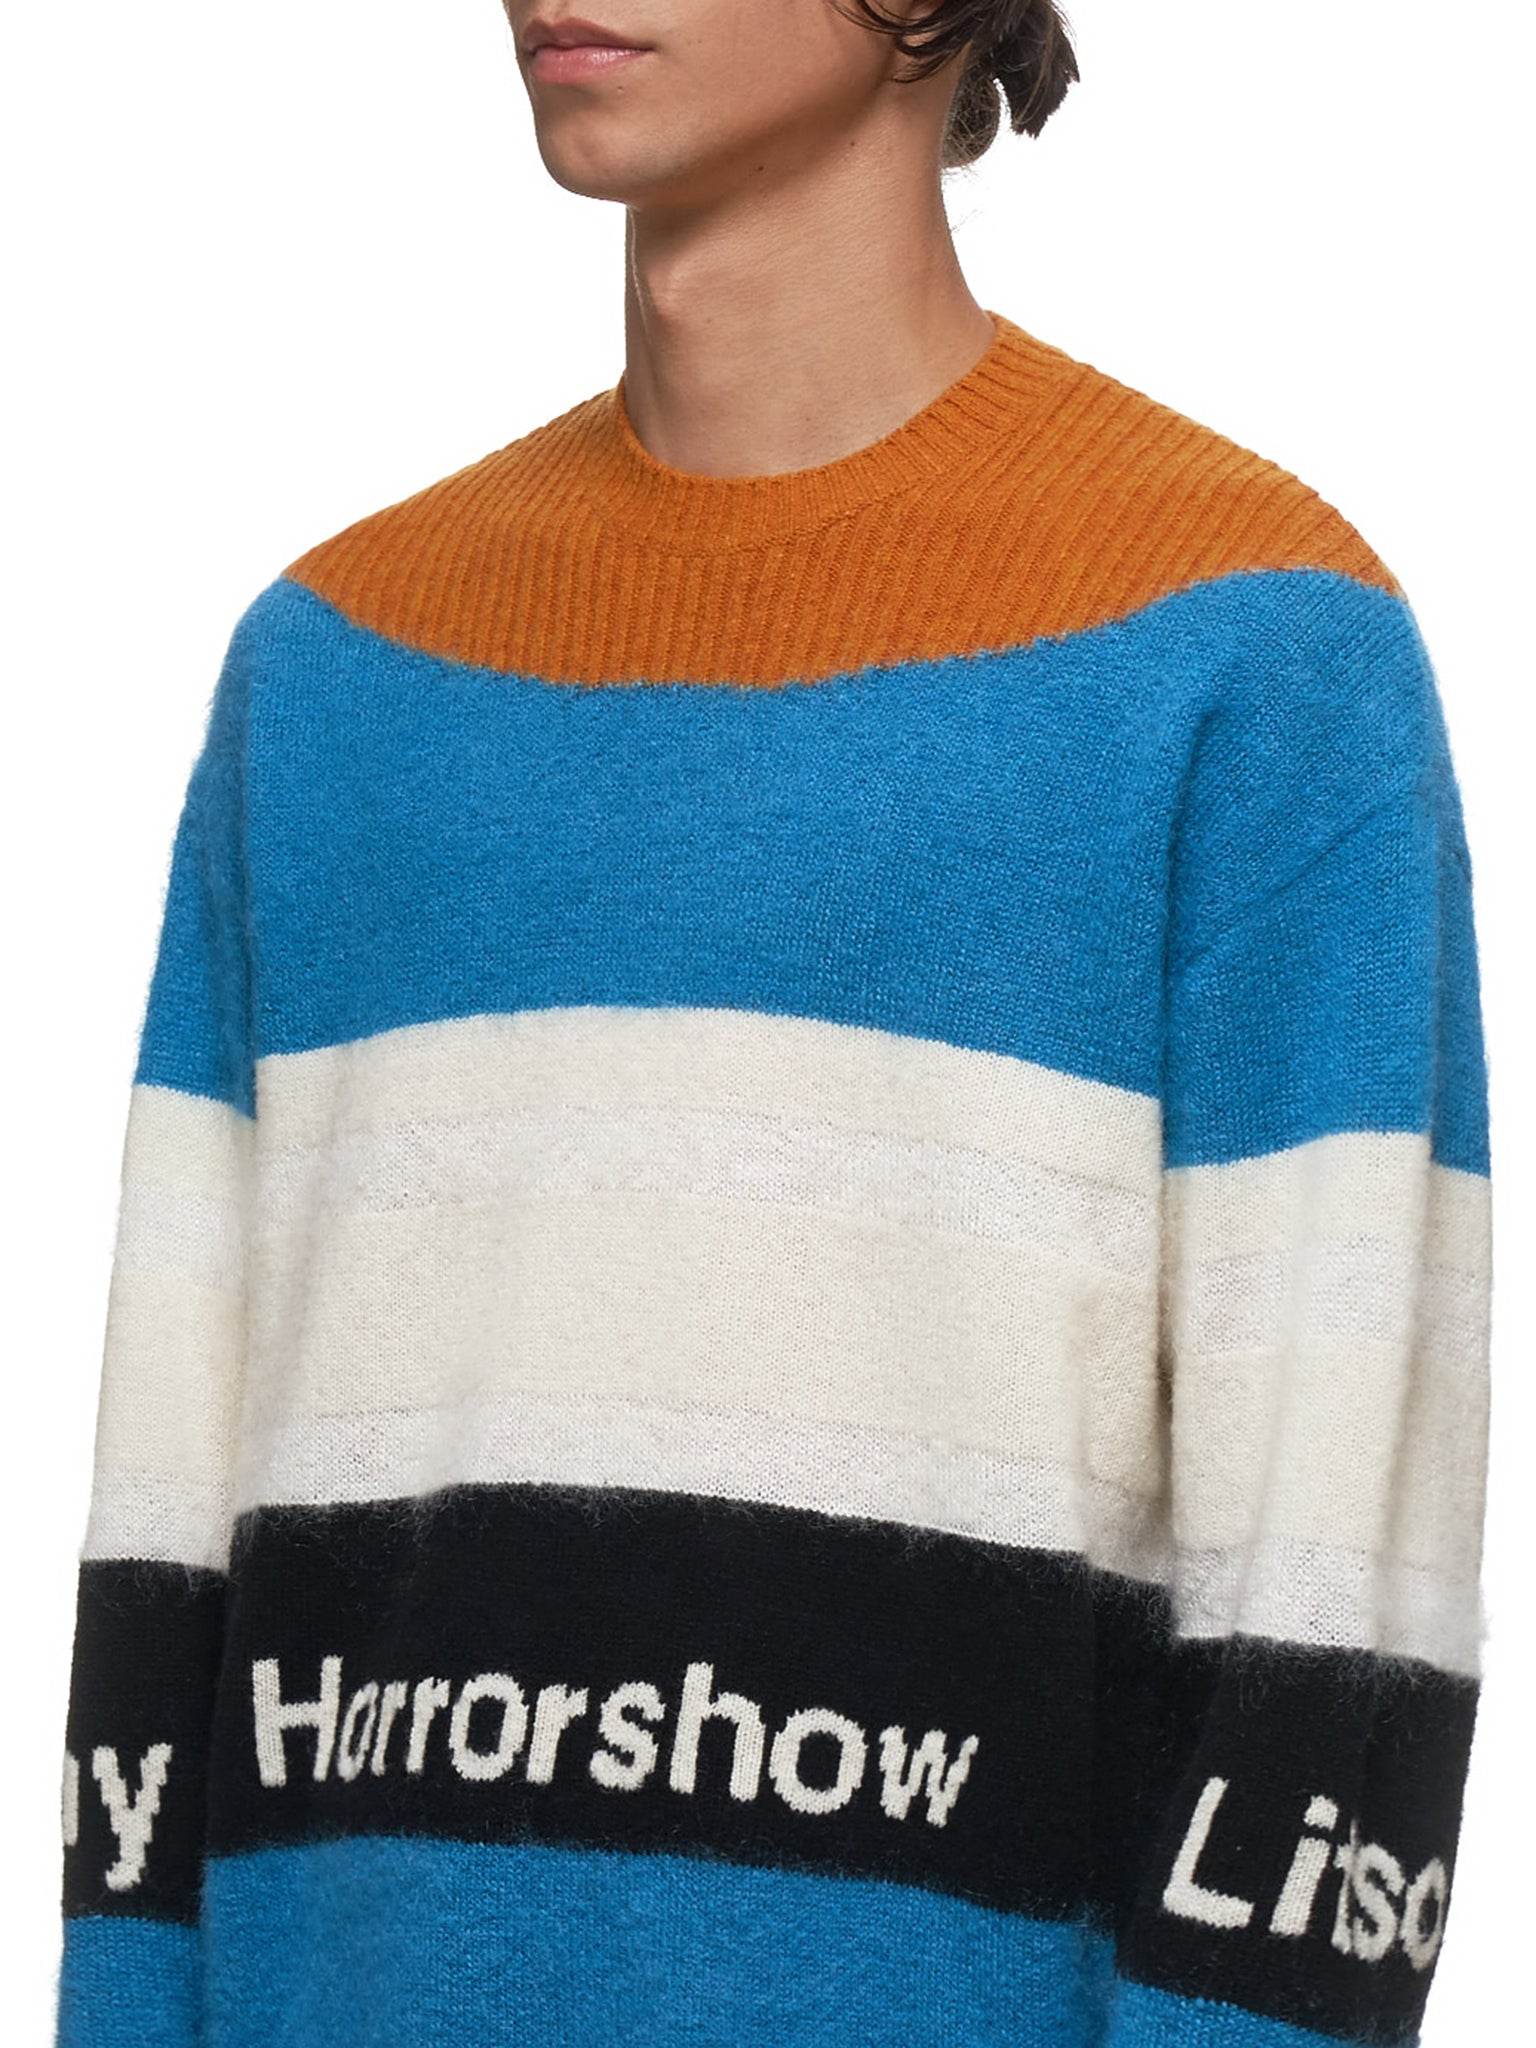 Undercover Sweater - Hlorenzo Detail 1